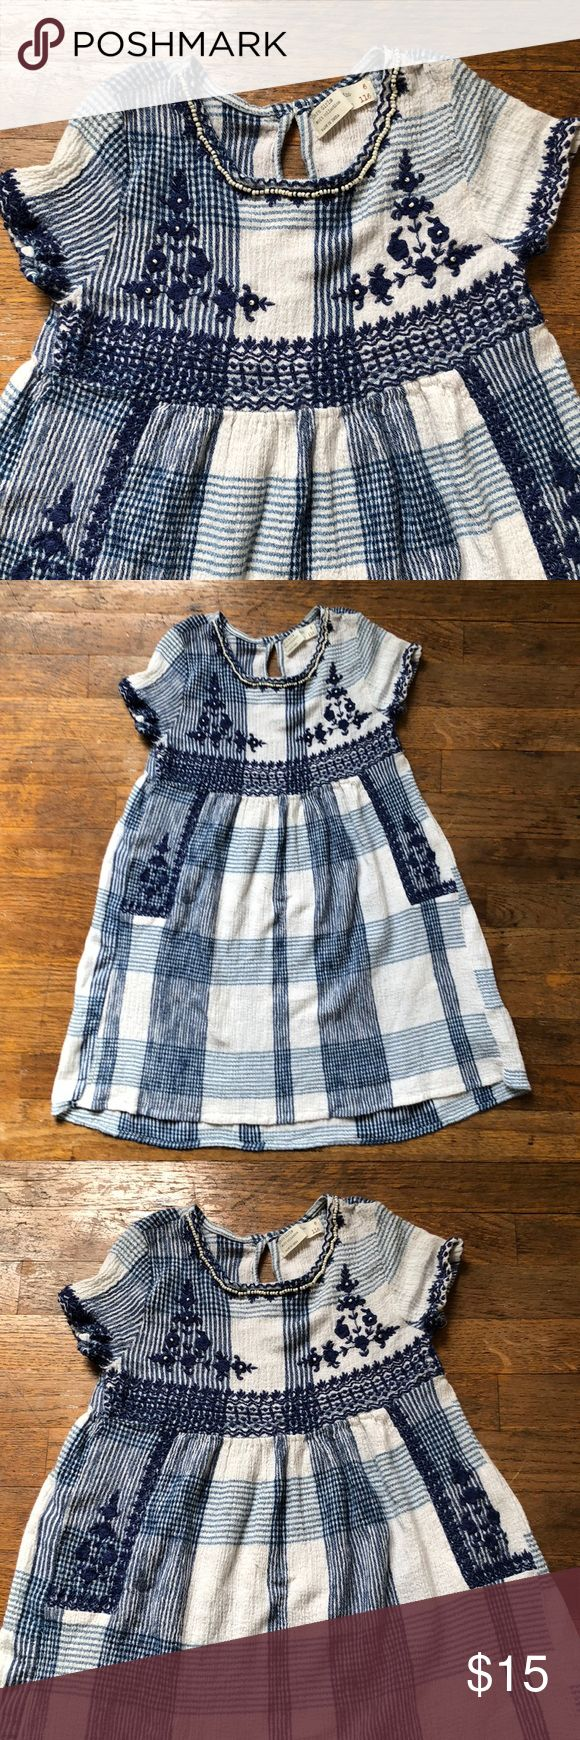 Zara Girls Dress Size 6 Preowned no stains no tears embroidery, beaded, Zara Dresses